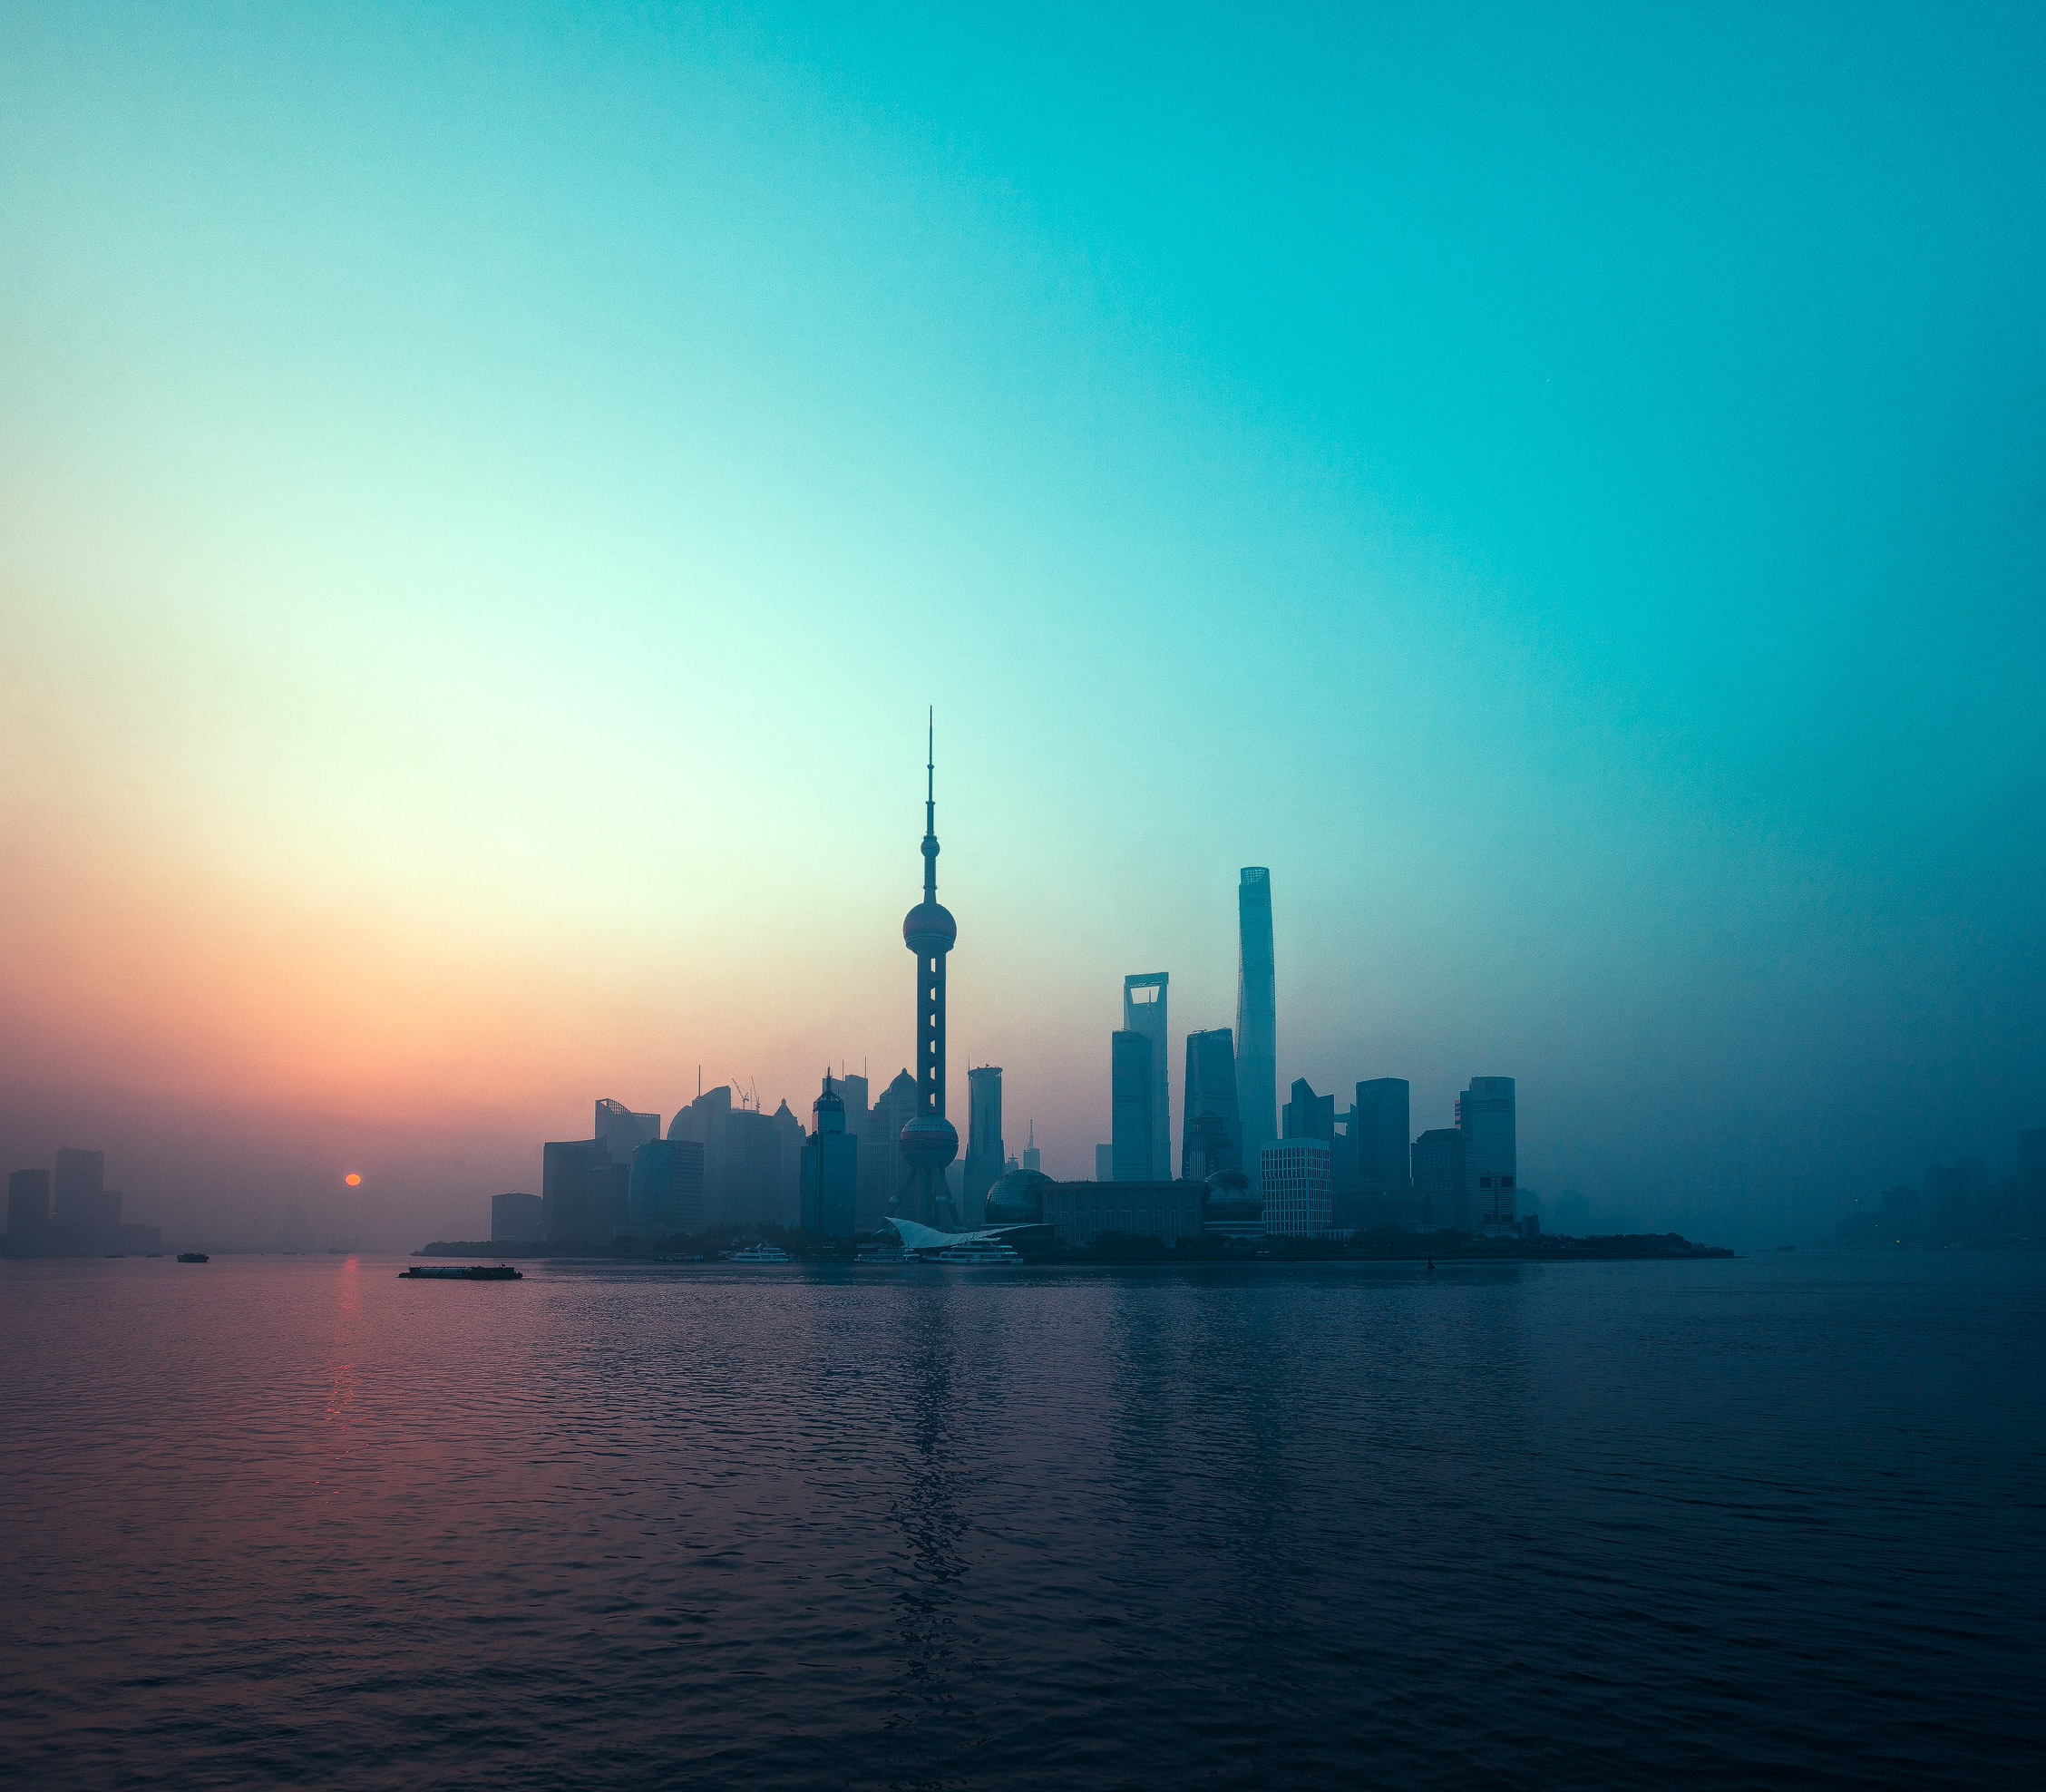 Early morning in shanghai 2256x1976 wallpapers - Shanghai skyline wallpaper ...